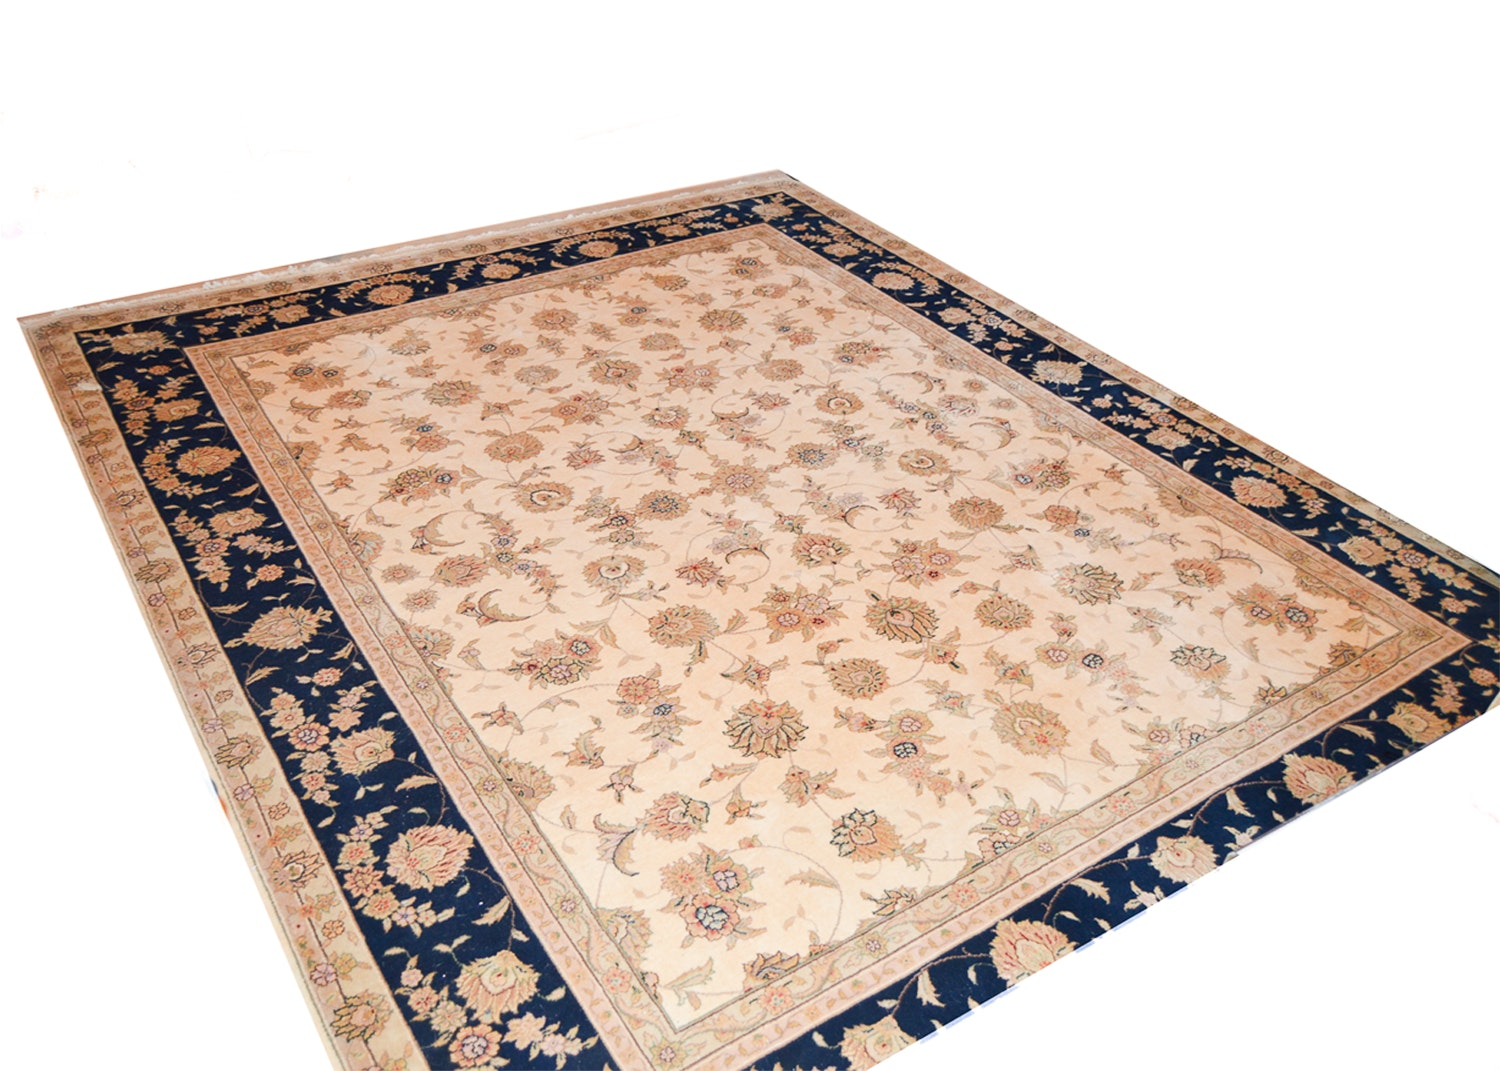 Finely Hand-Knotted Persian Kashan Wool Area Rug